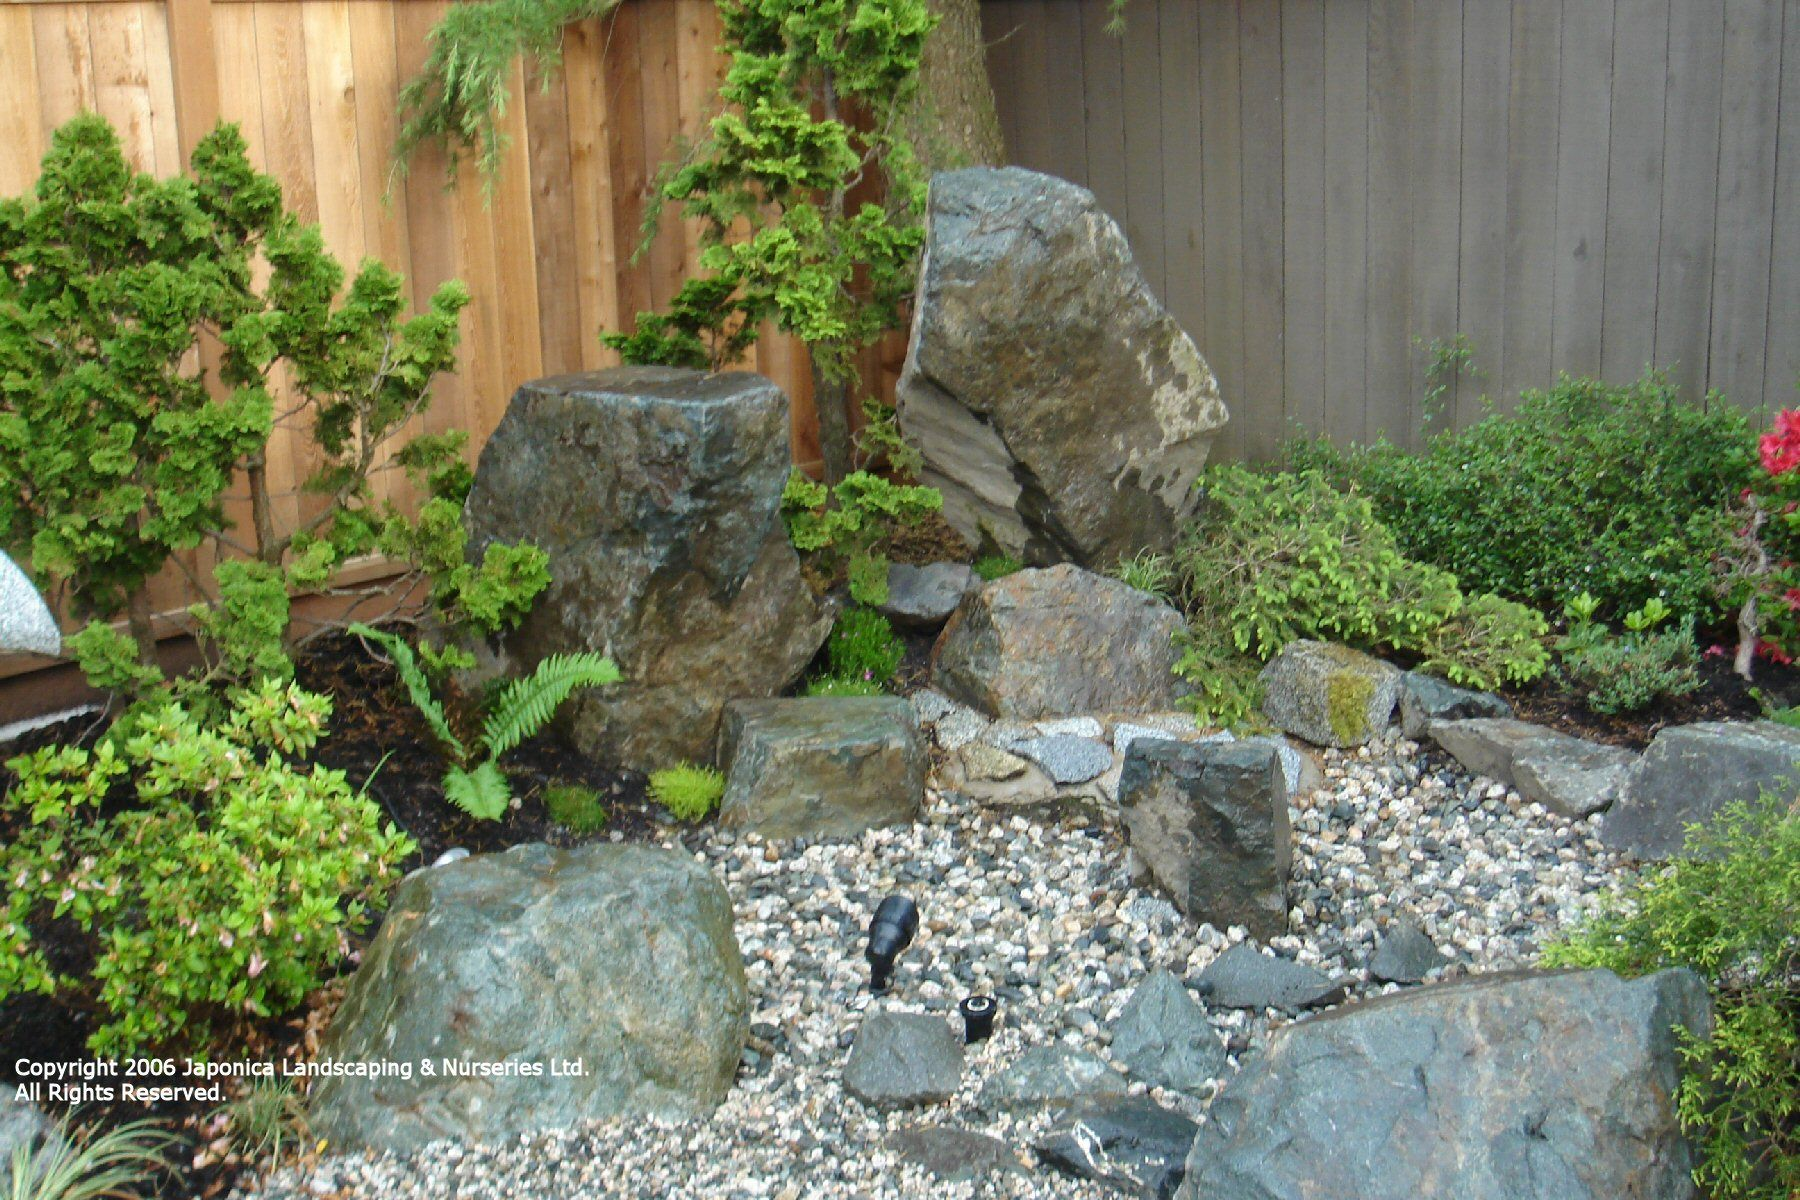 17 best images about rock garden ideas on pinterest gardens hillside landscaping and backyards - Rock Landscaping Design Ideas